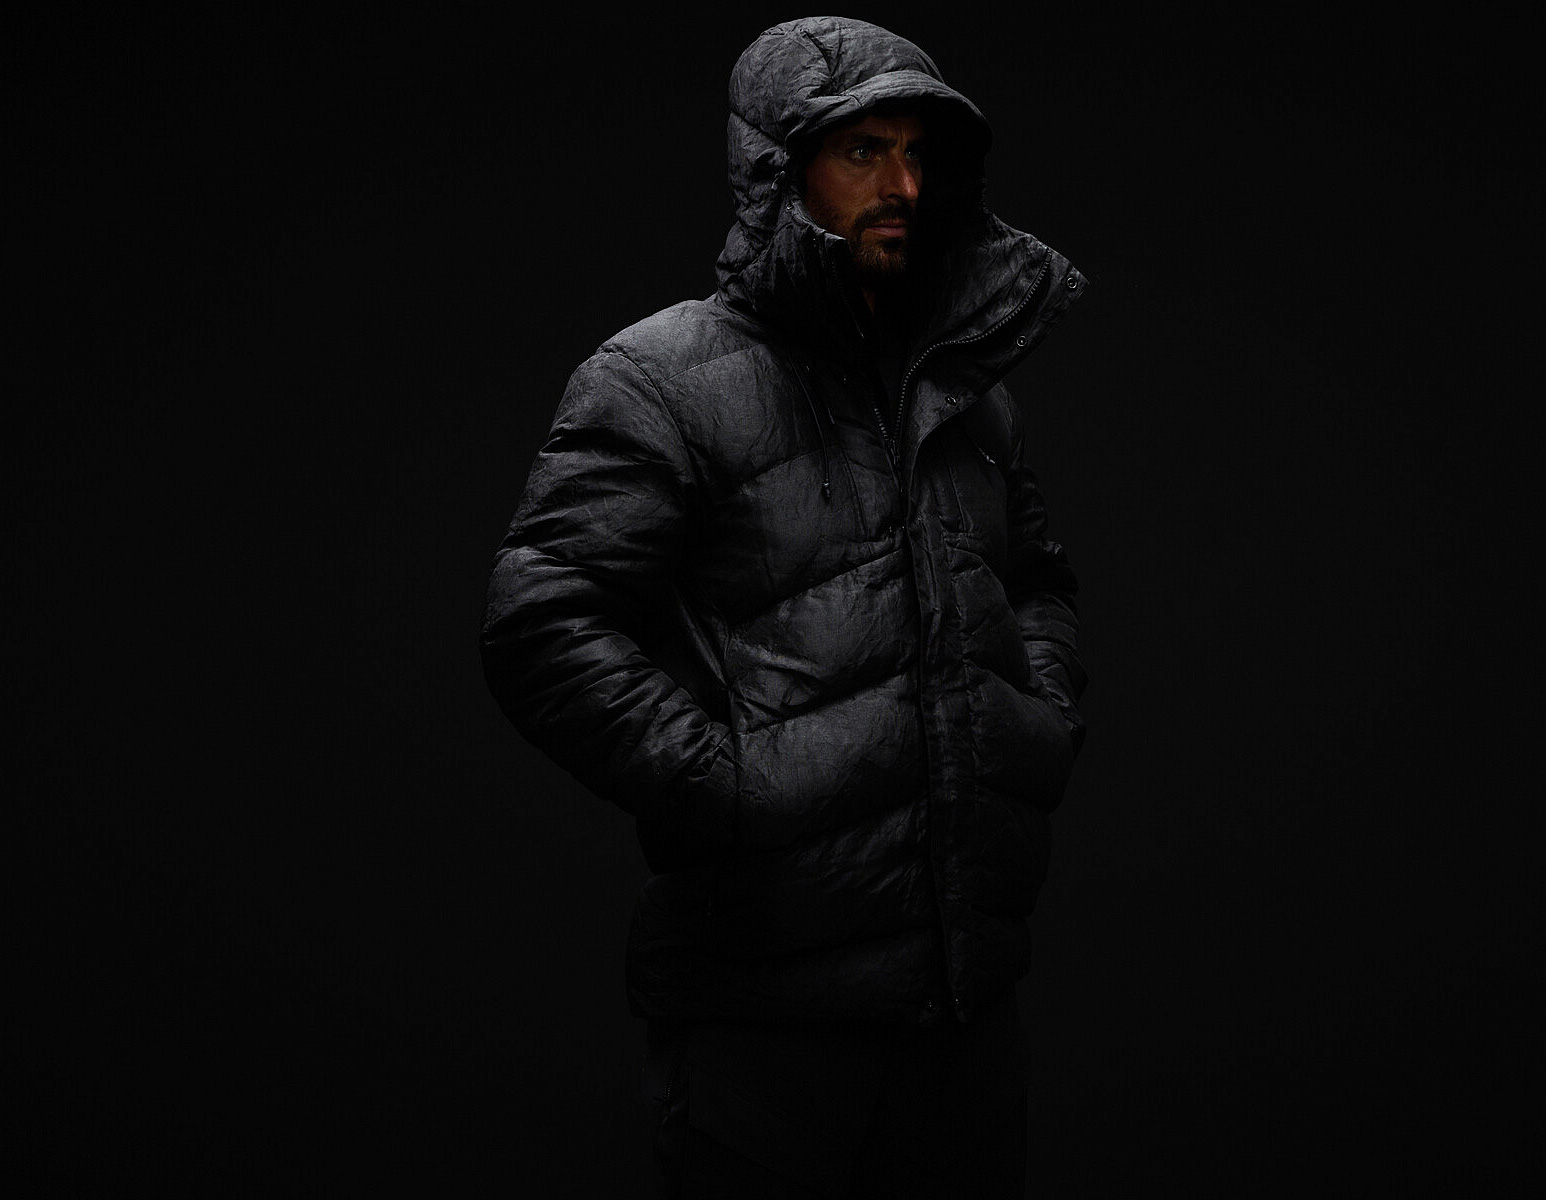 Vollebak Introduces -40º Indestructible Puffer Jacket at werd.com